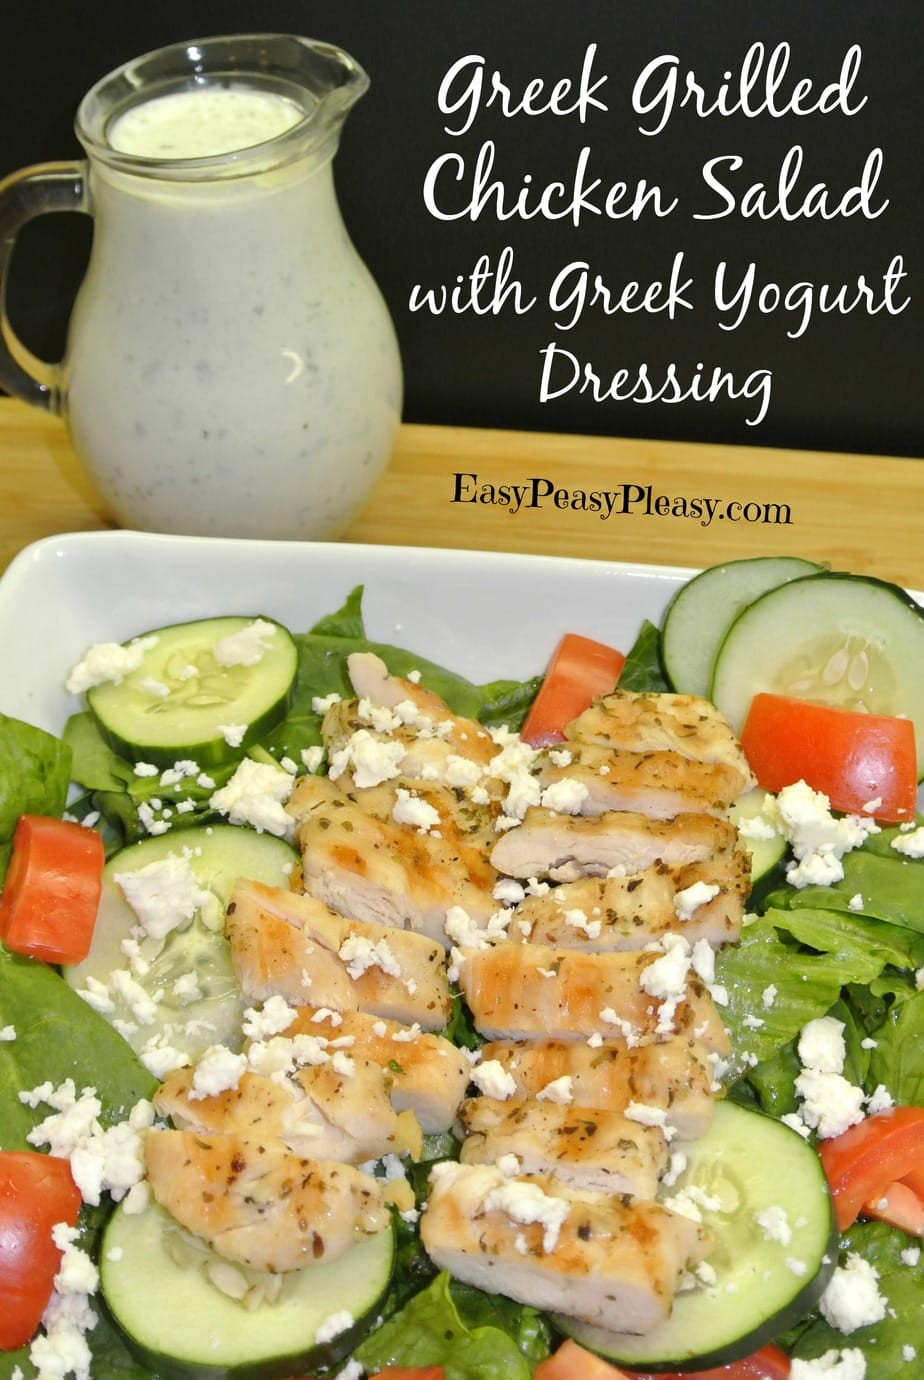 Greek Marinated Grilled Chicken Salad with Homemade Greek Yogurt Dressing